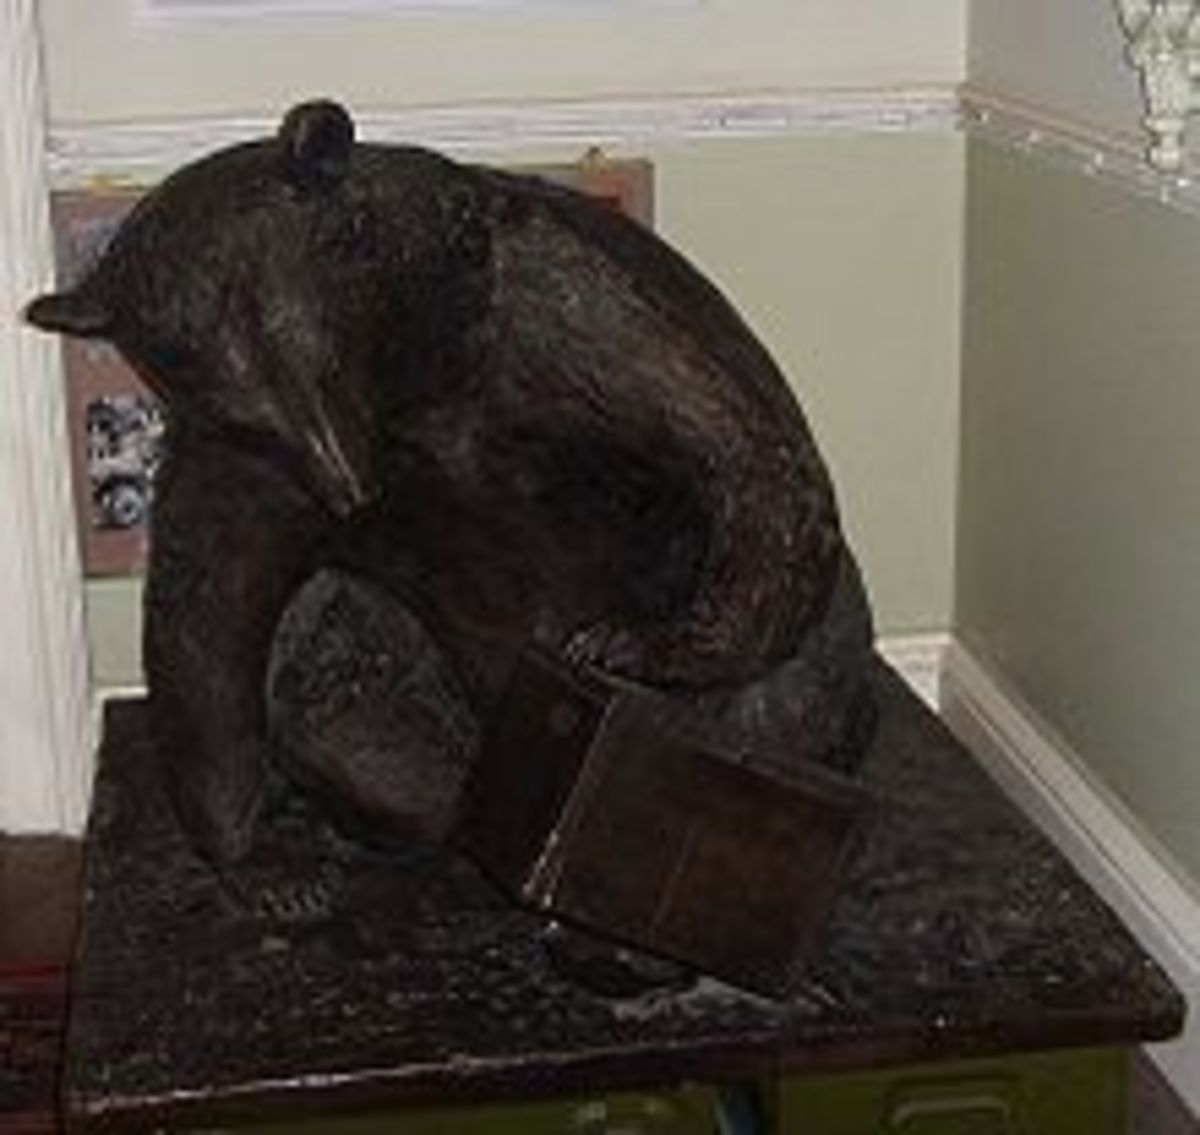 Sculpture: a tribute to bear abuse.